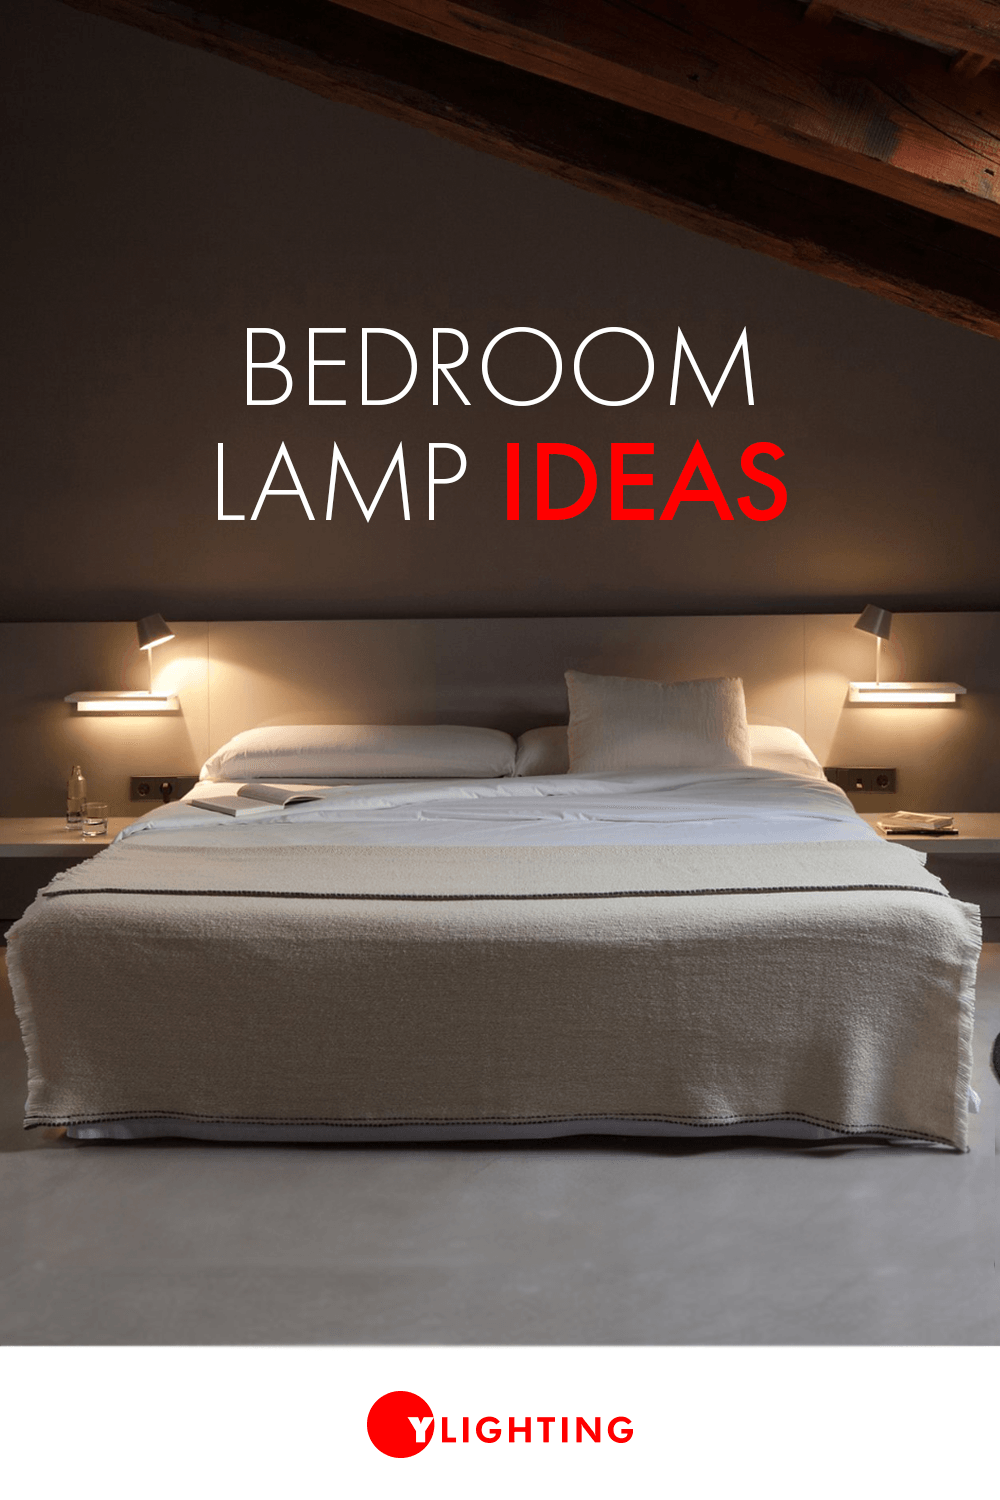 Best Bedroom Lamp Ideas Floor Lamp Bedroom Modern Bedroom Lighting Bedroom Reading Lights